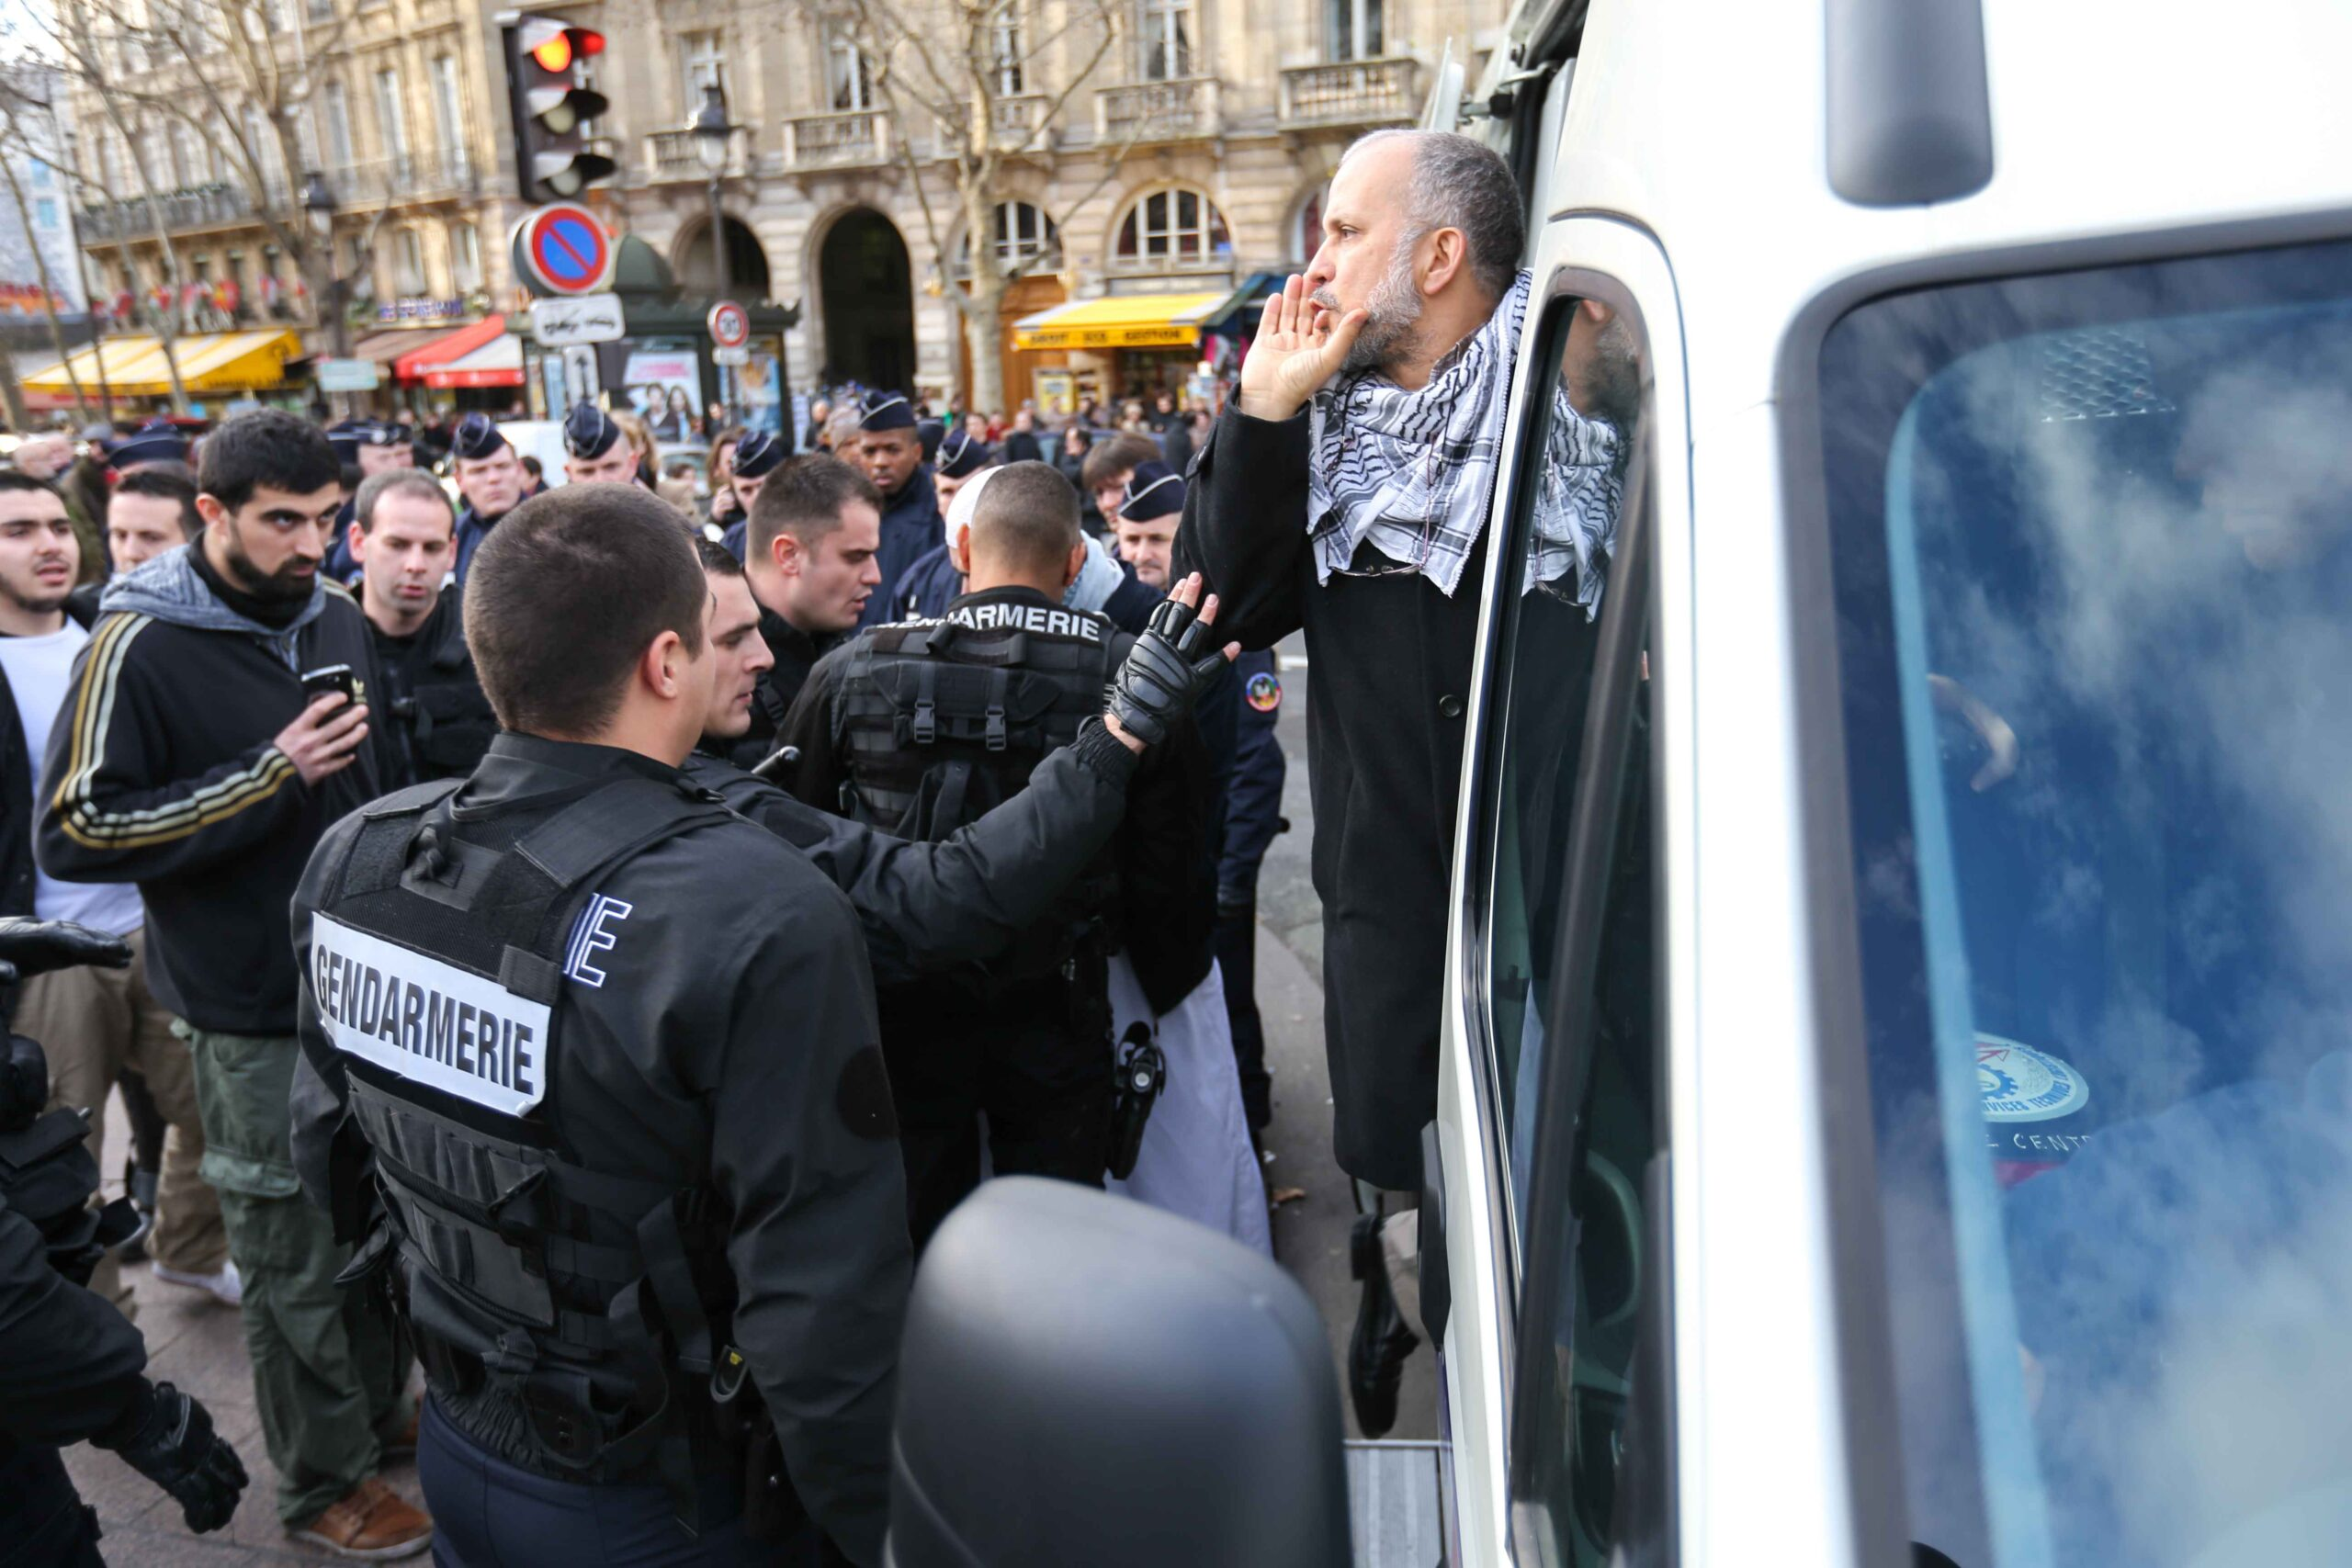 This picture taken on December 29, 2012, in Paris, shows the President of the Cheikh Yassine collective Abdelhakim Sefrioui (C with a white djellaba) being arrested by French anti-riot gendarmes after a protest to support Palestine.Abdelhakim Sefrioui is